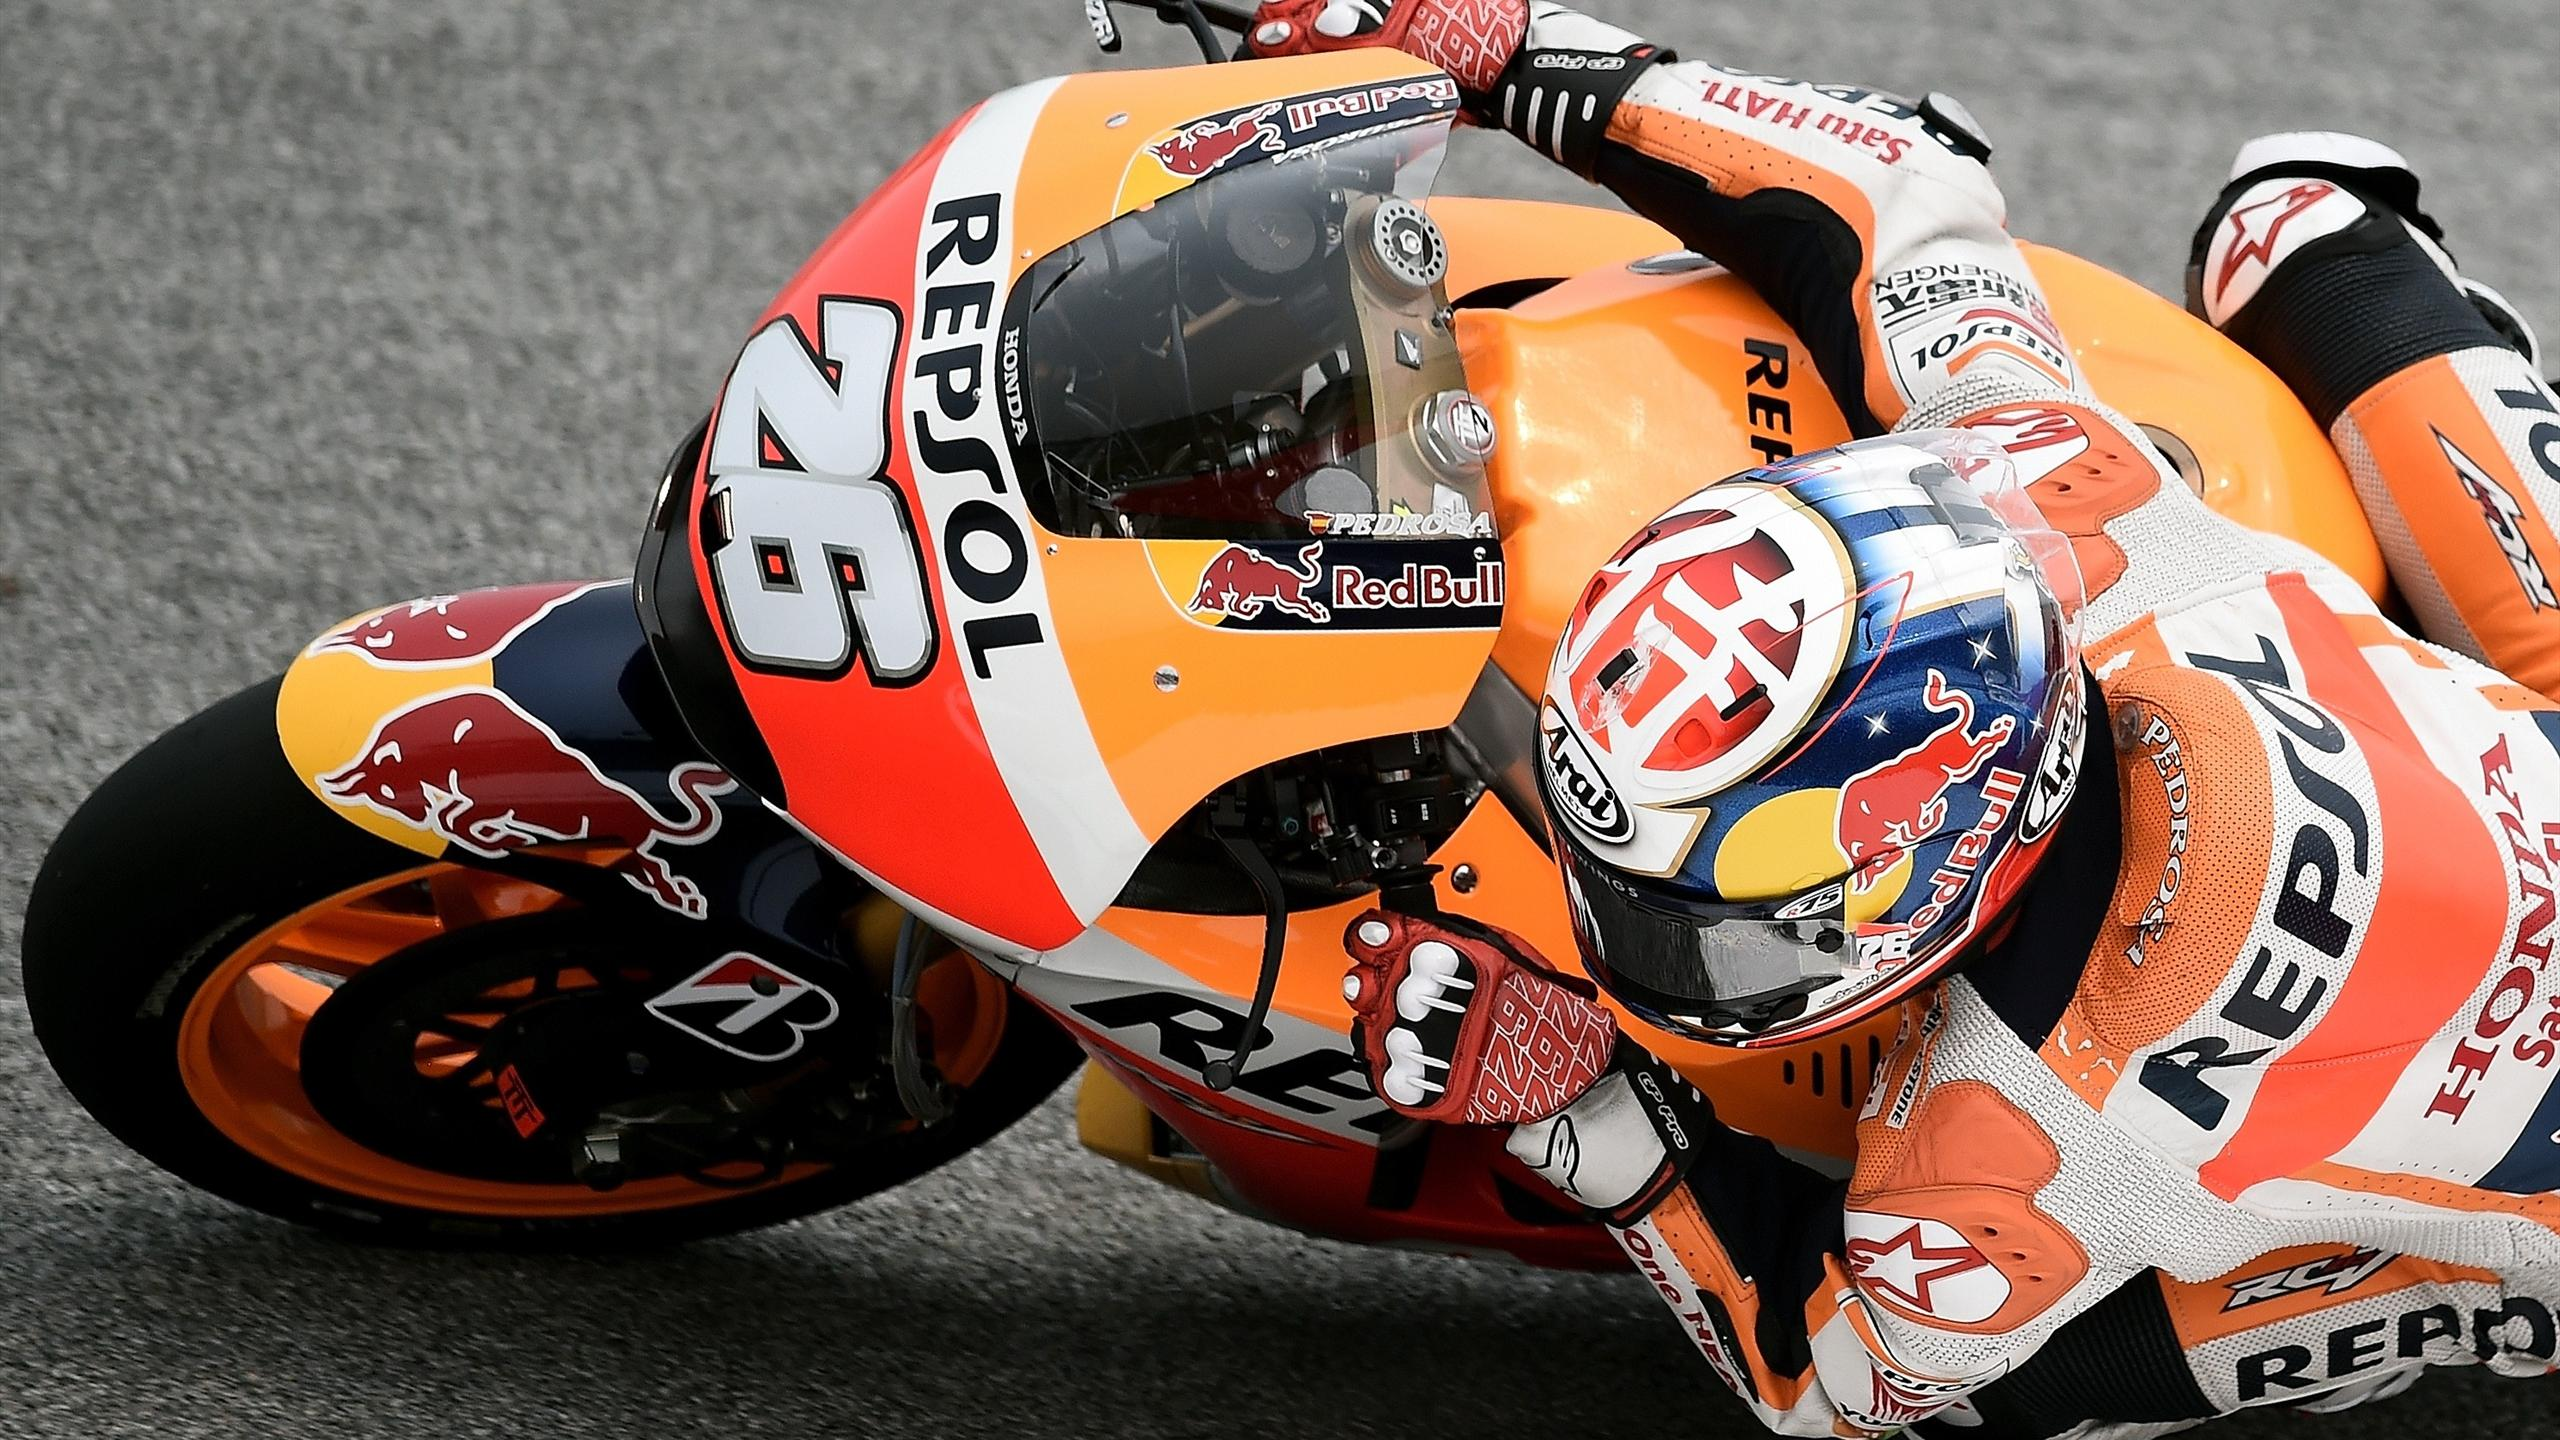 Repsol Honda Team's Spanish rider Dani Pedrosa powers his bike during the second practice session of the MotoGP Malaysian Grand Prix at Sepang International Circuit on October 23, 2015